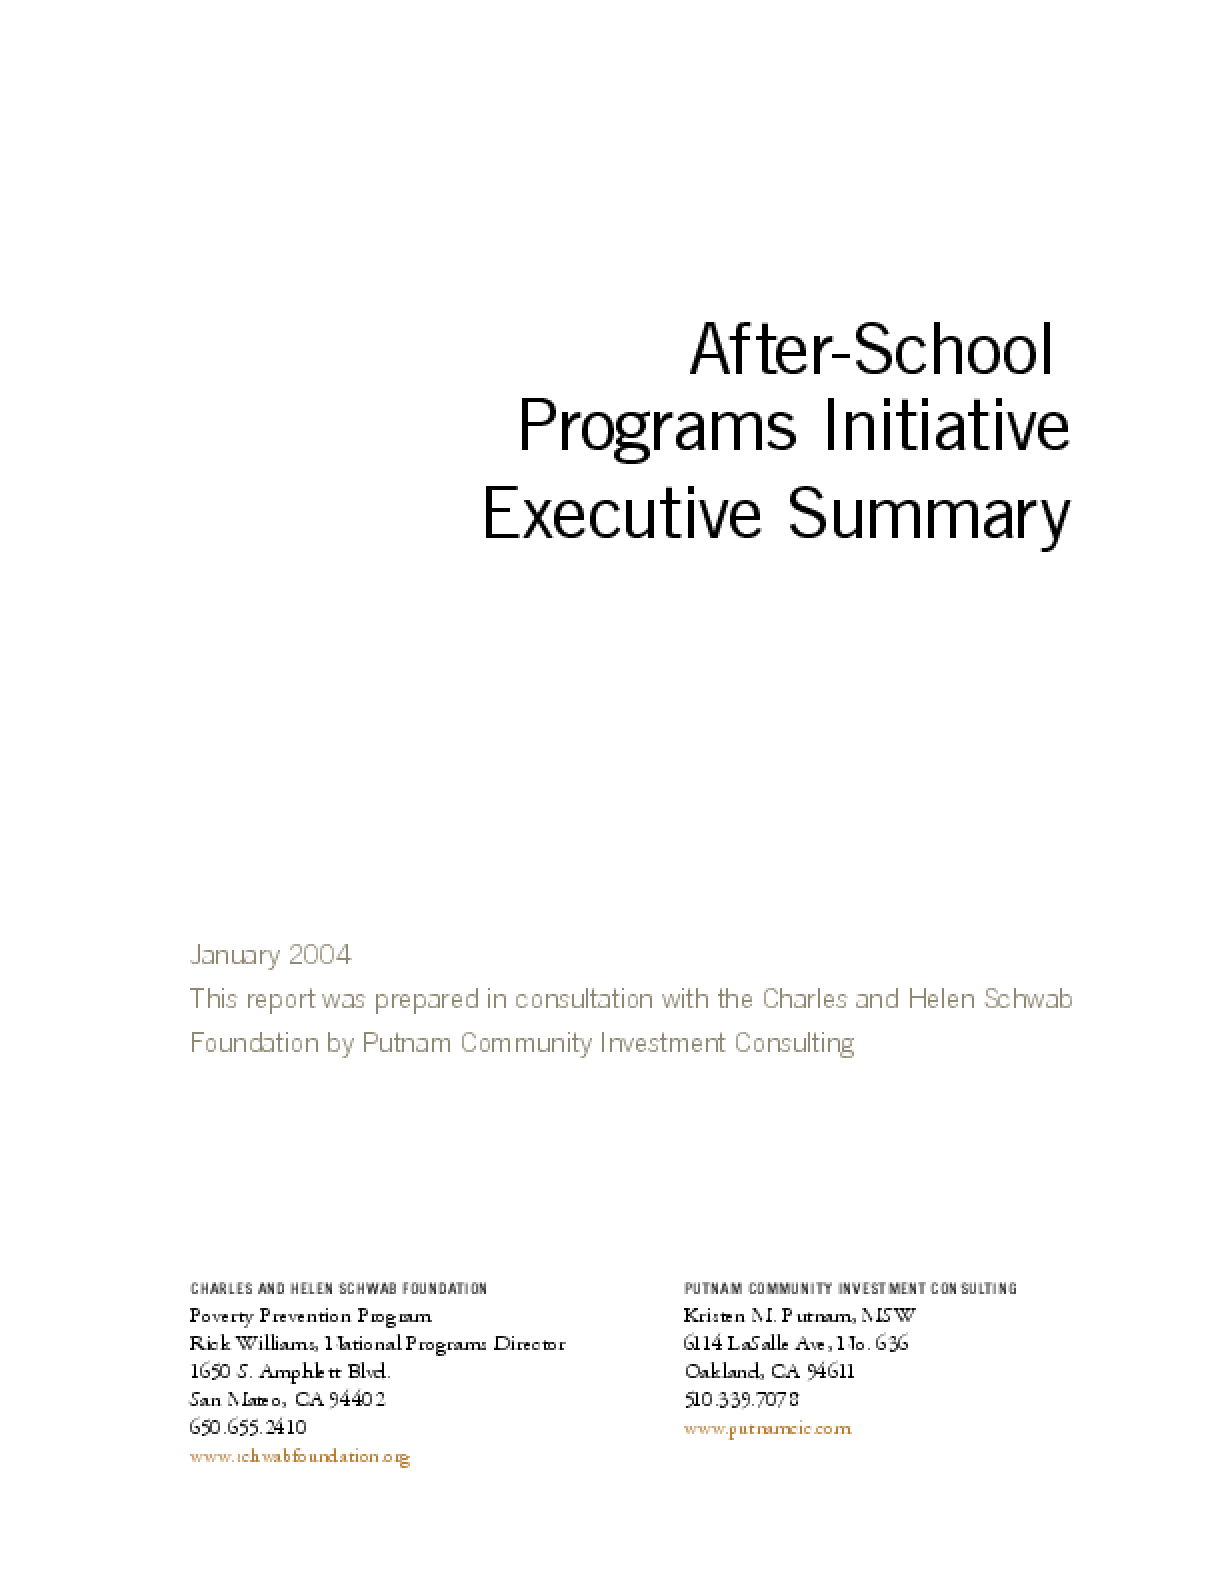 After-School Programs Initiative Report - Executive Summary